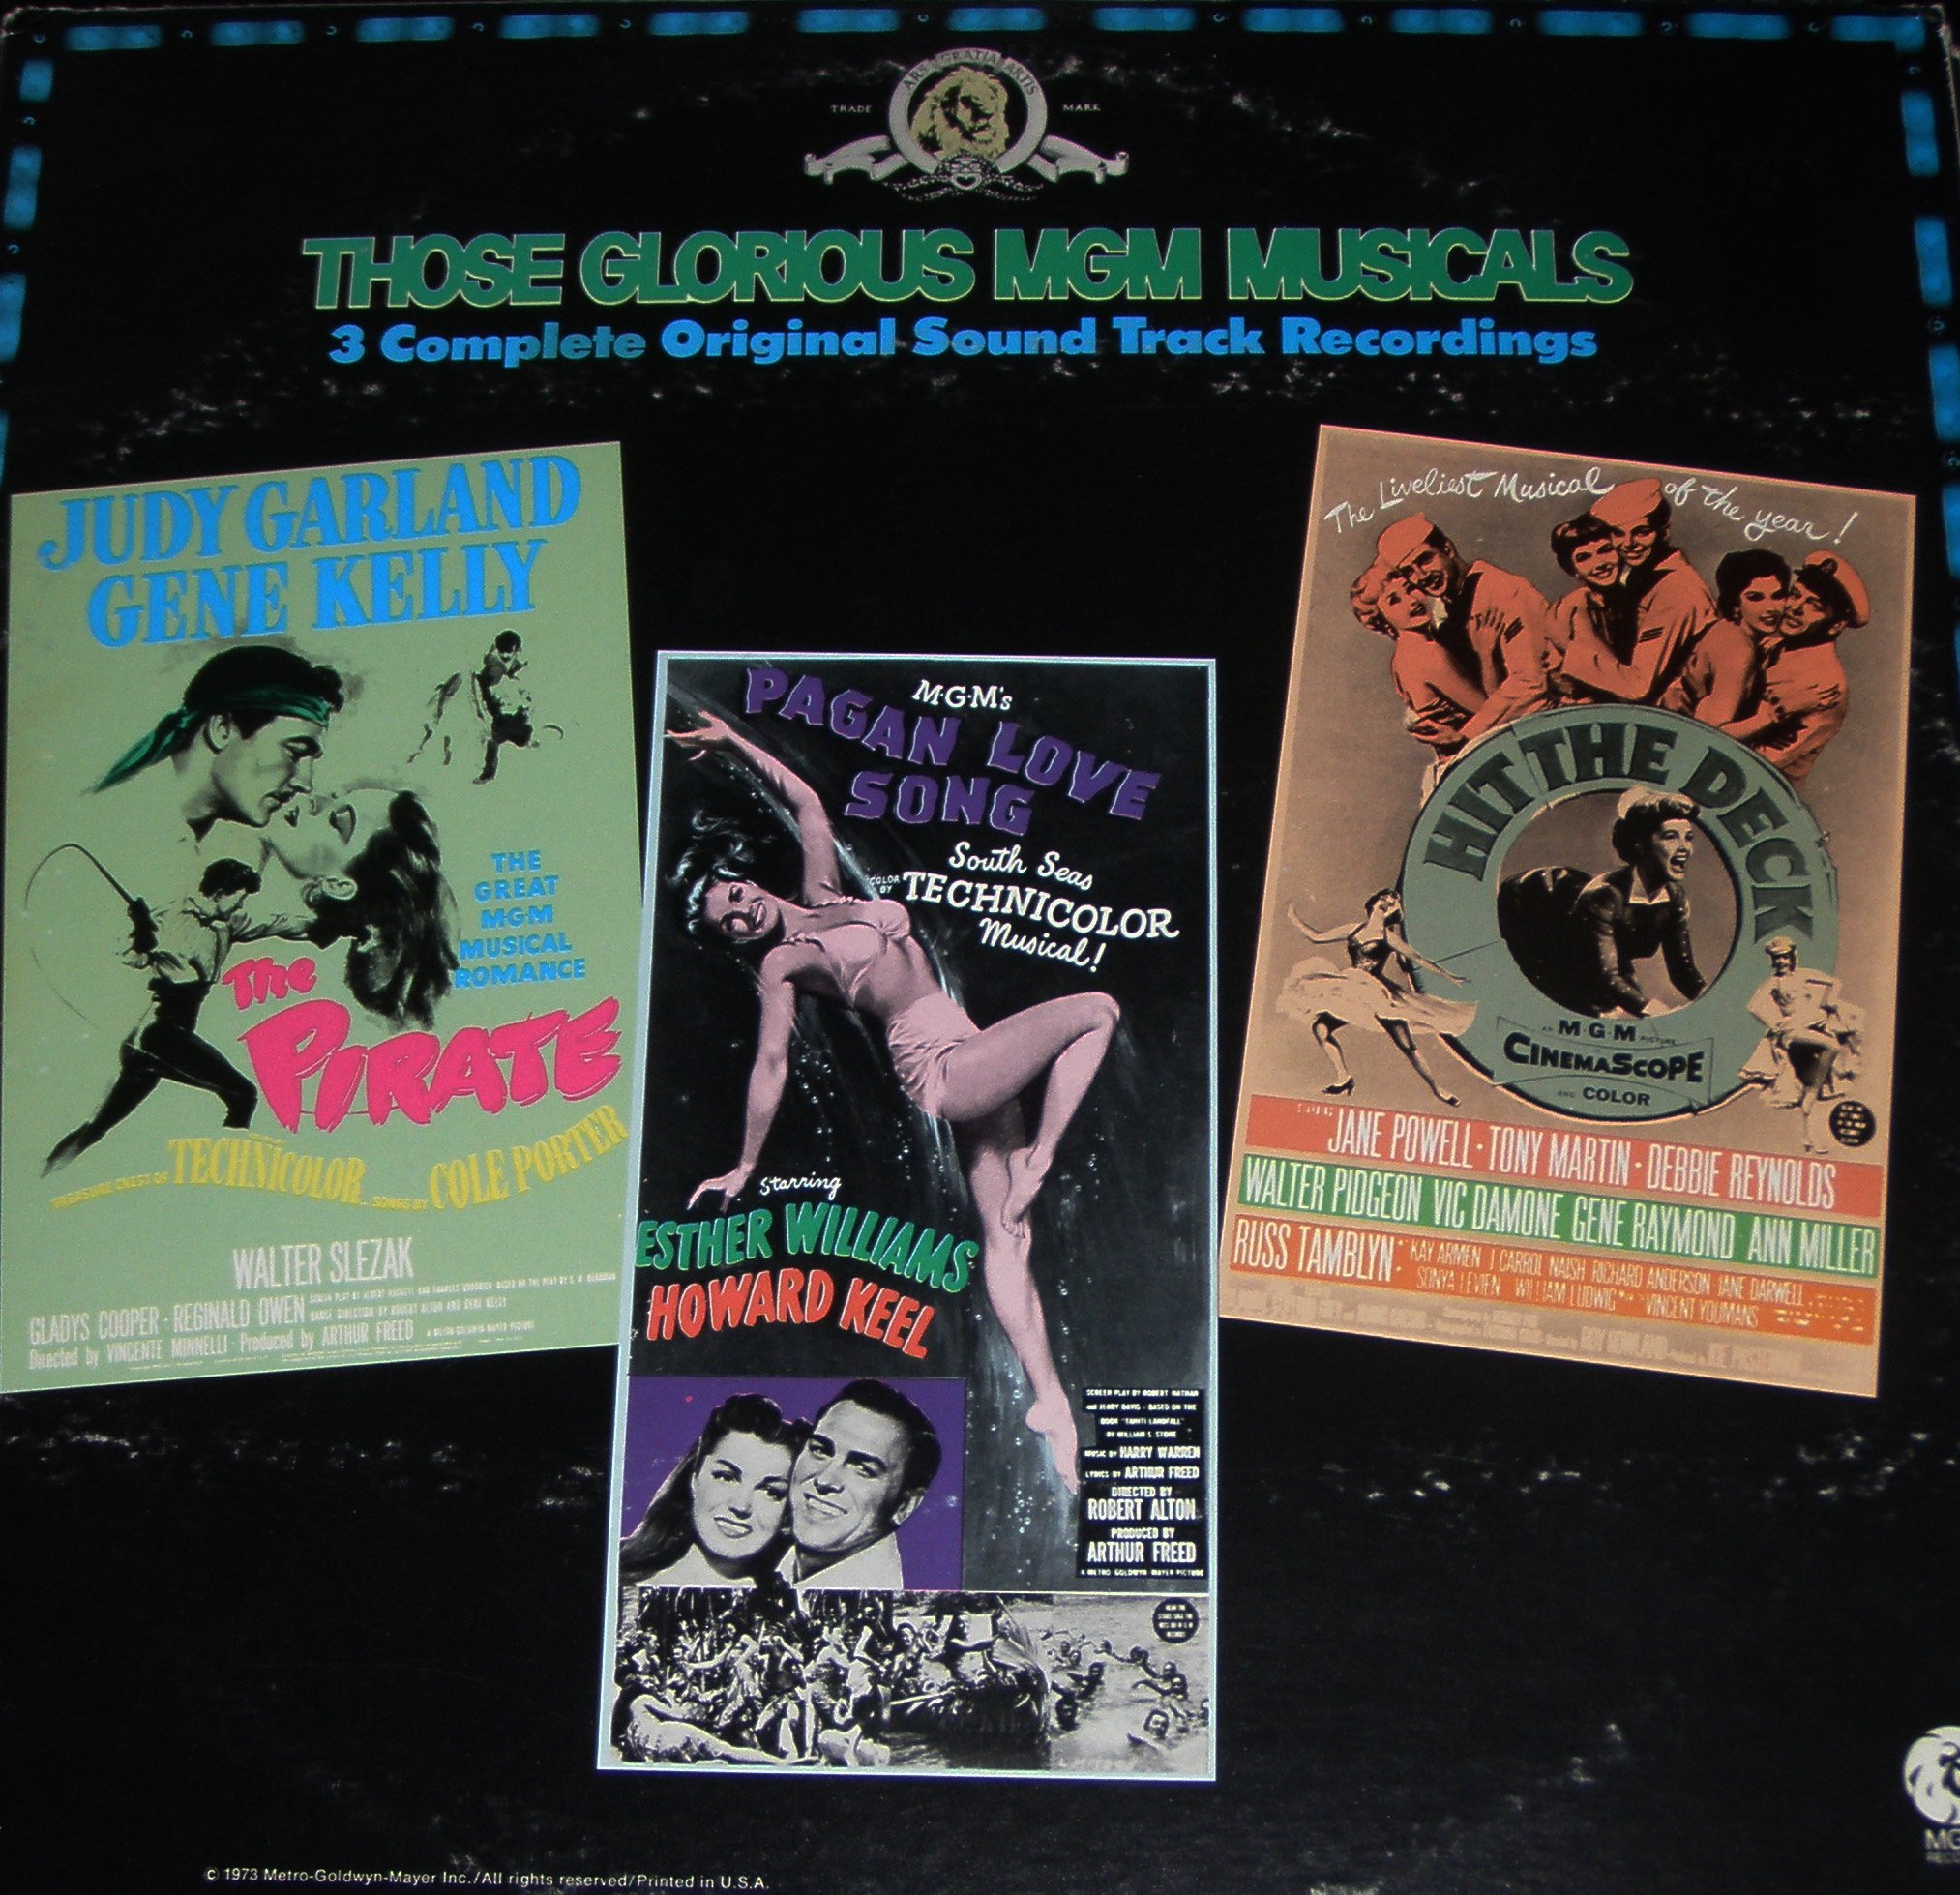 Those Glorious MGM Musicals, 3 soundtracks, the